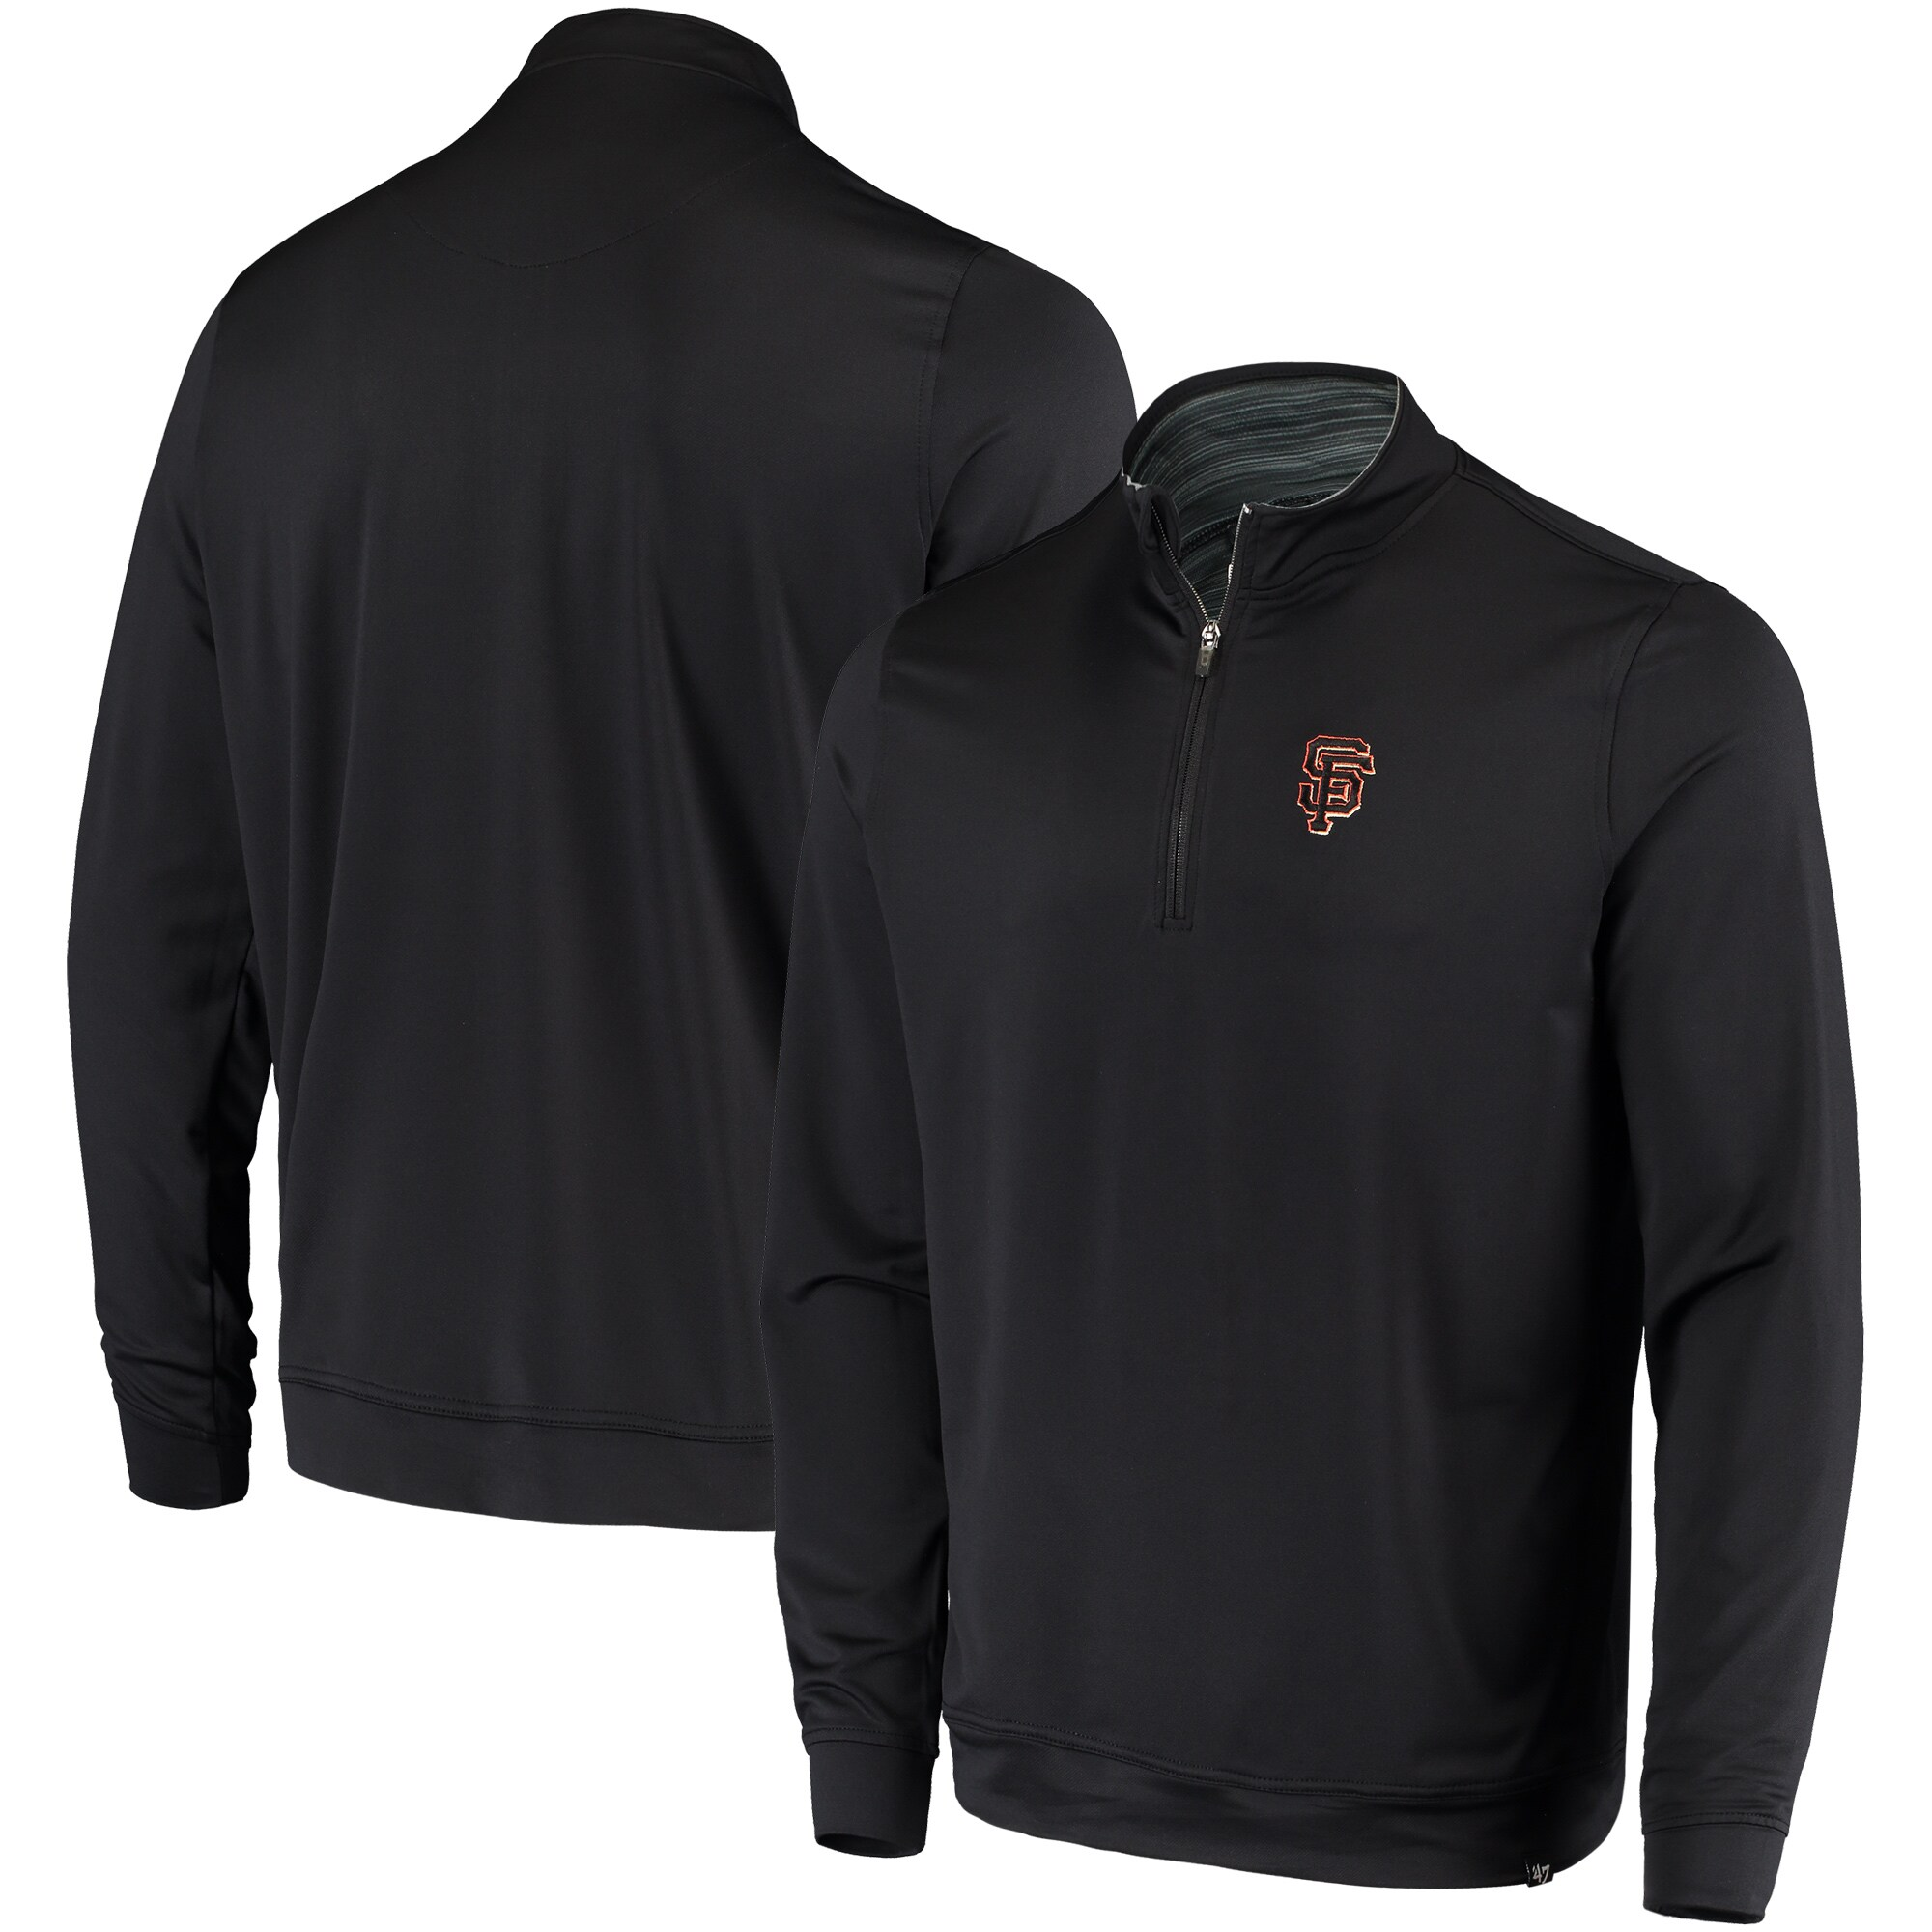 San Francisco Giants '47 Relay Fleece Pullover Sweatshirt - Black